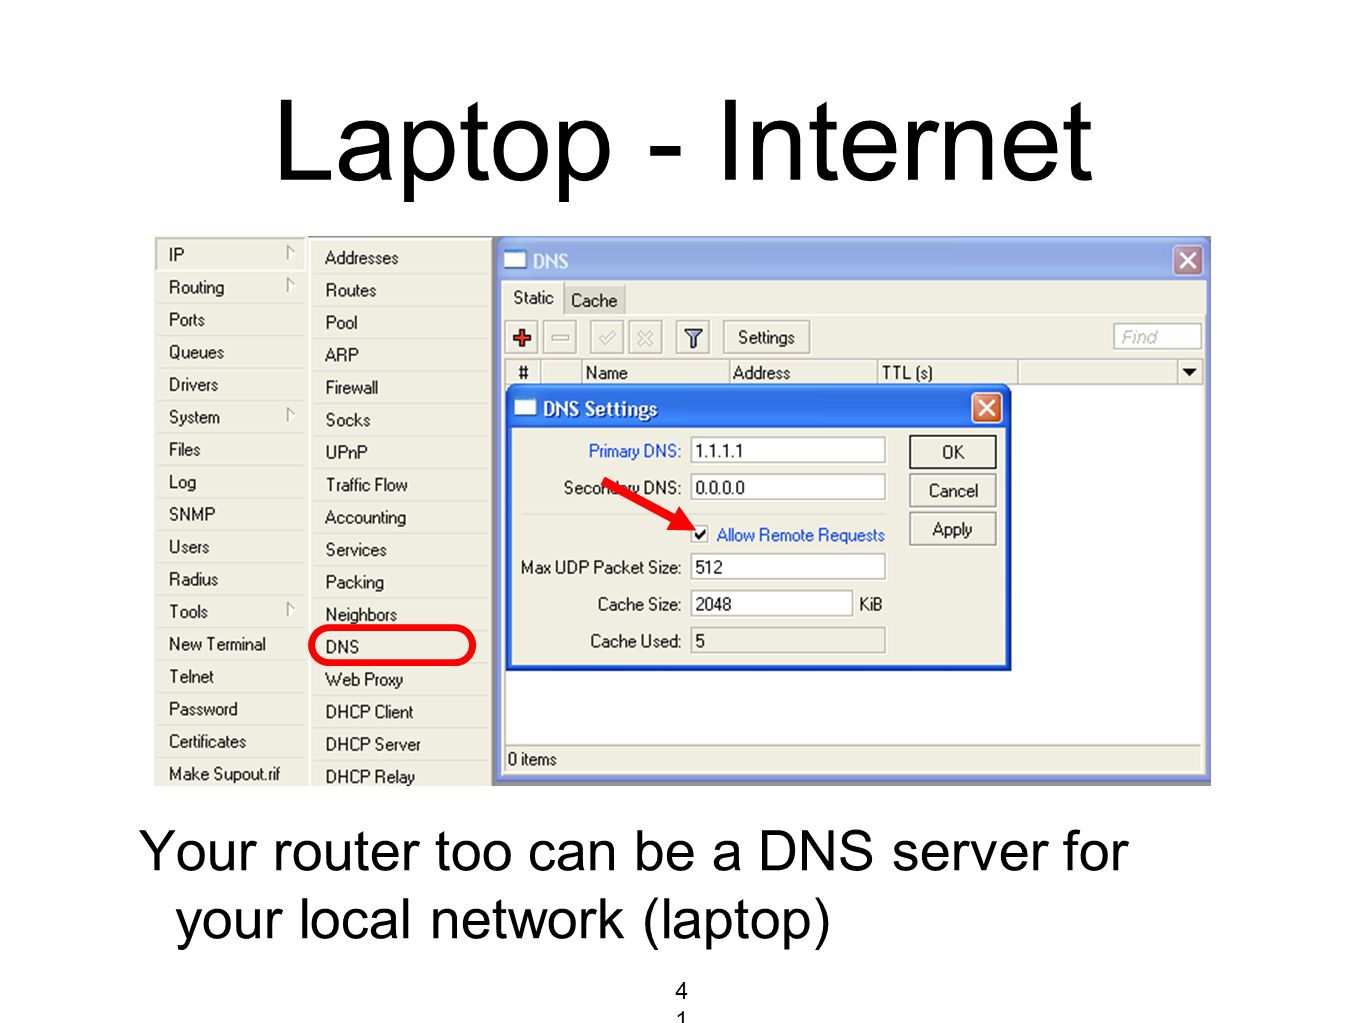 Laptop - Internet Your router too can be a DNS server for your local network (laptop) 41